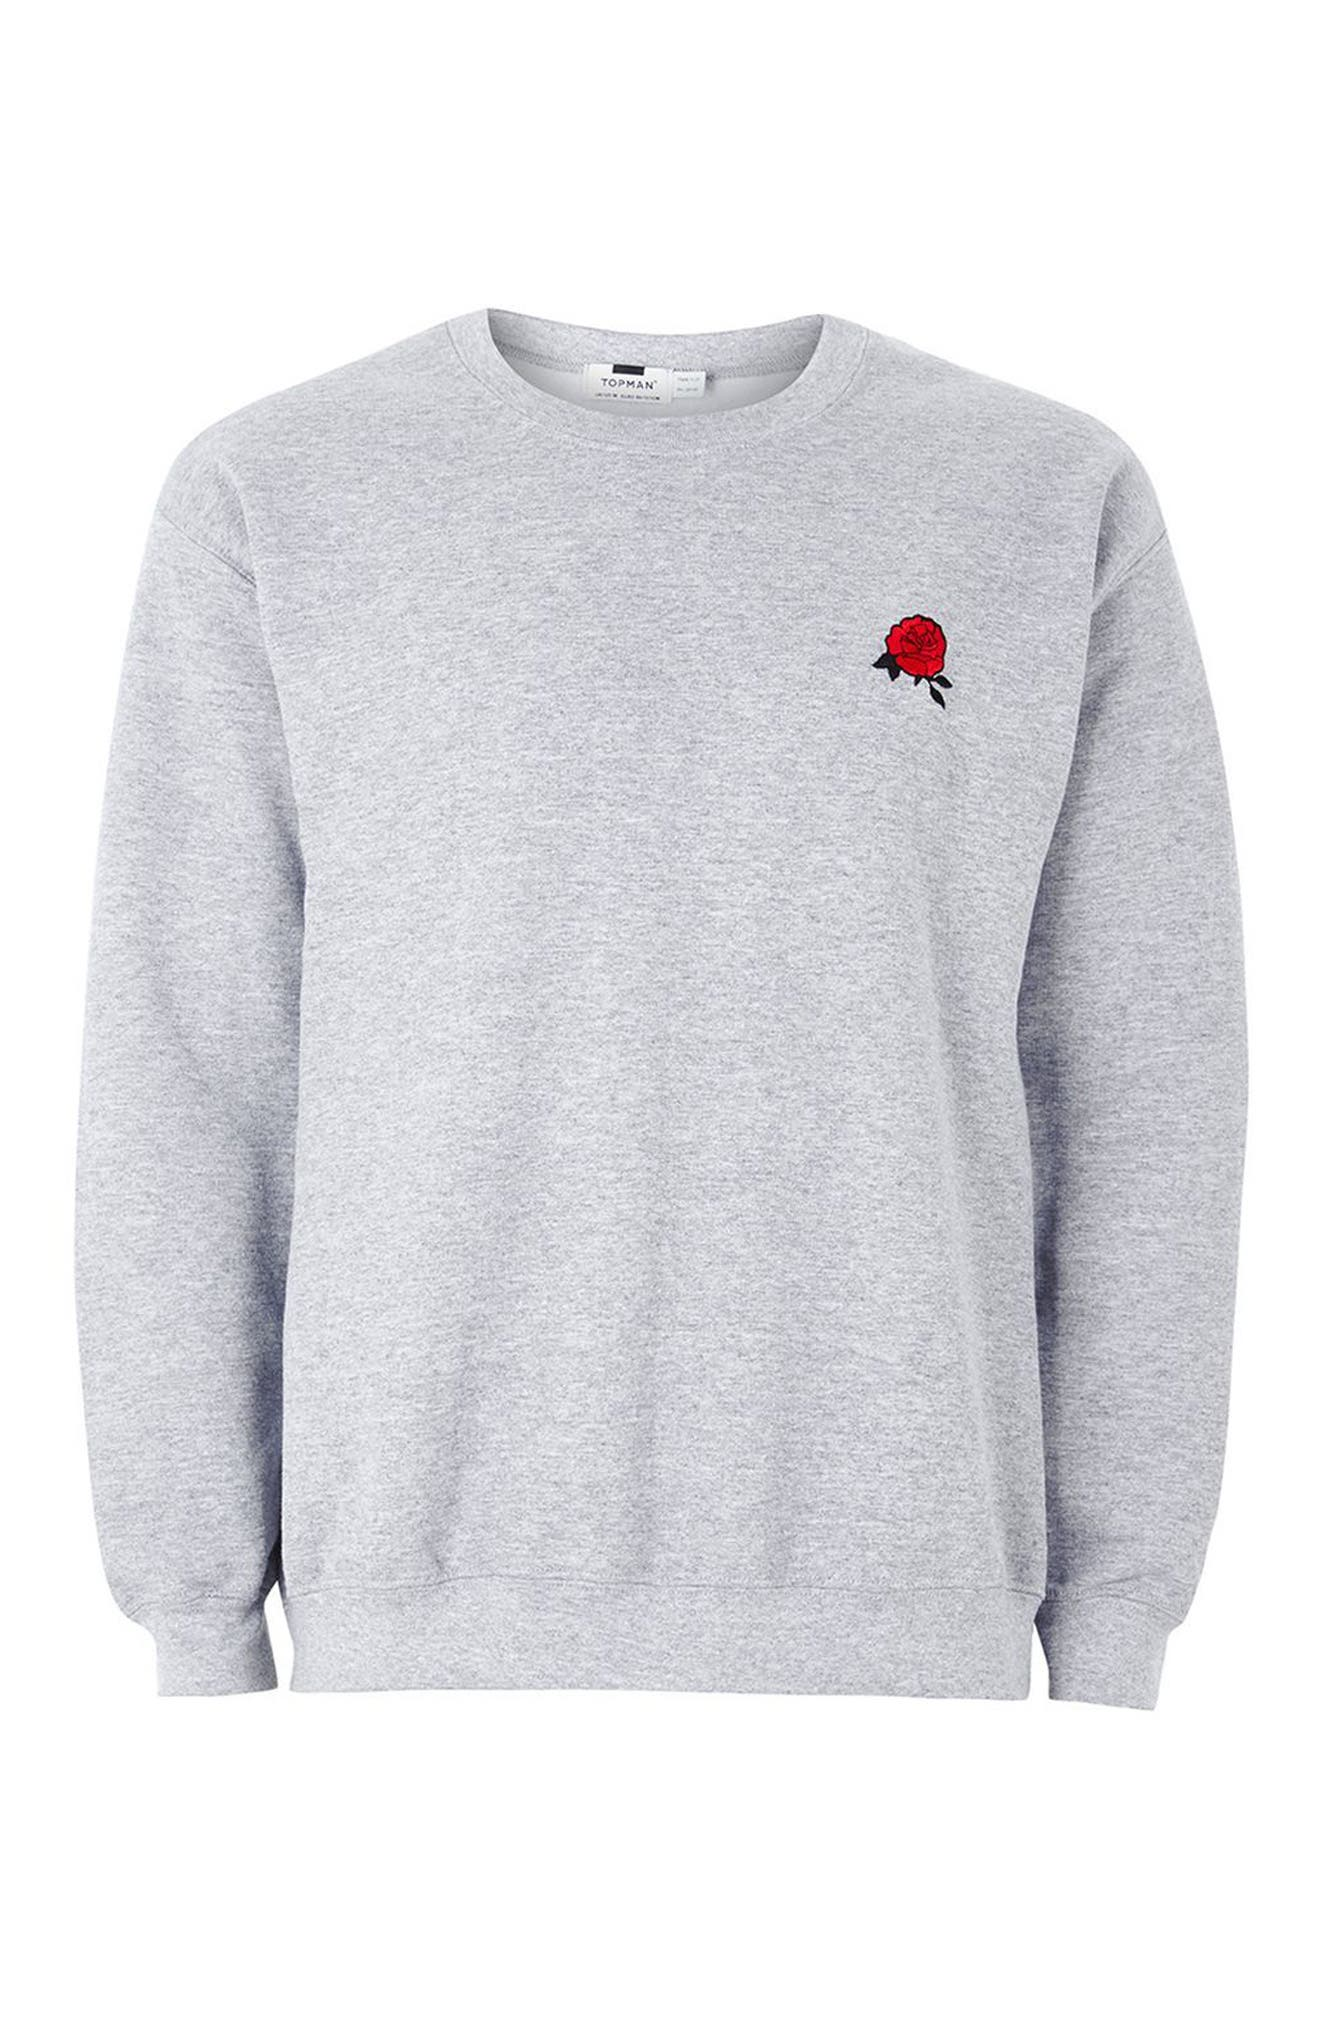 Rose Embroidered Sweatshirt,                             Alternate thumbnail 4, color,                             Light Grey